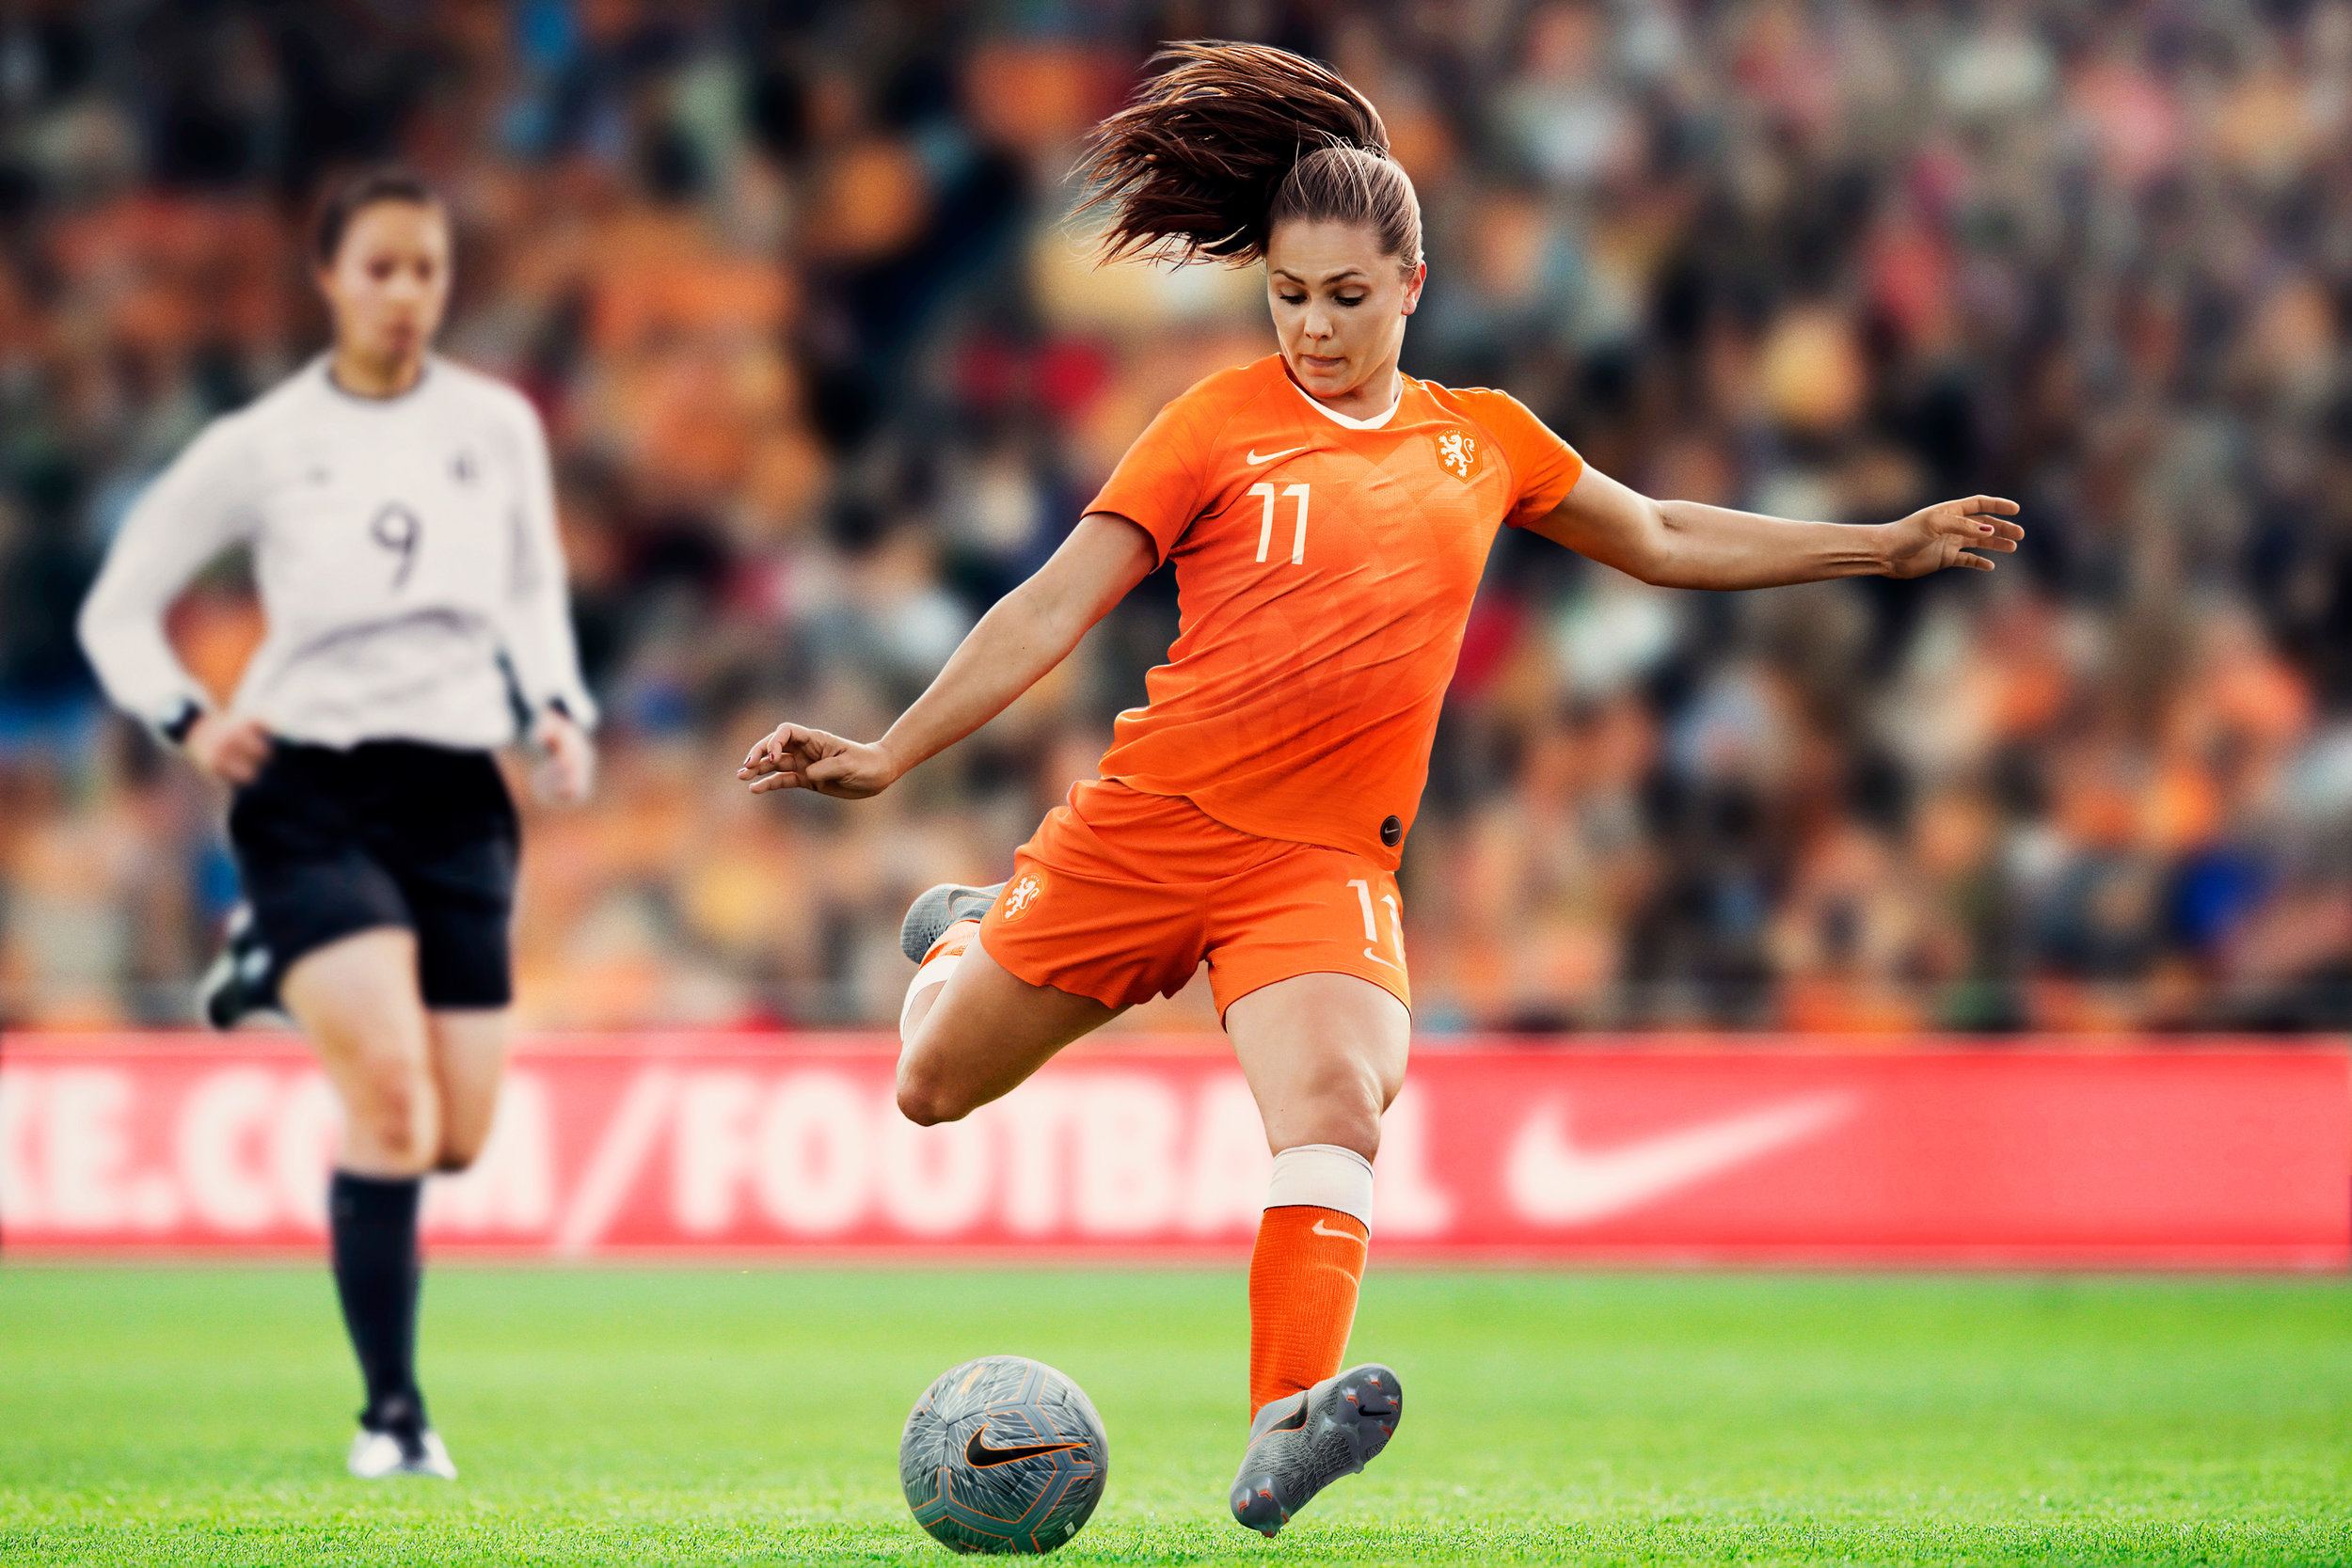 Nike_National_Team_Kit_Niederlande_5.jpg